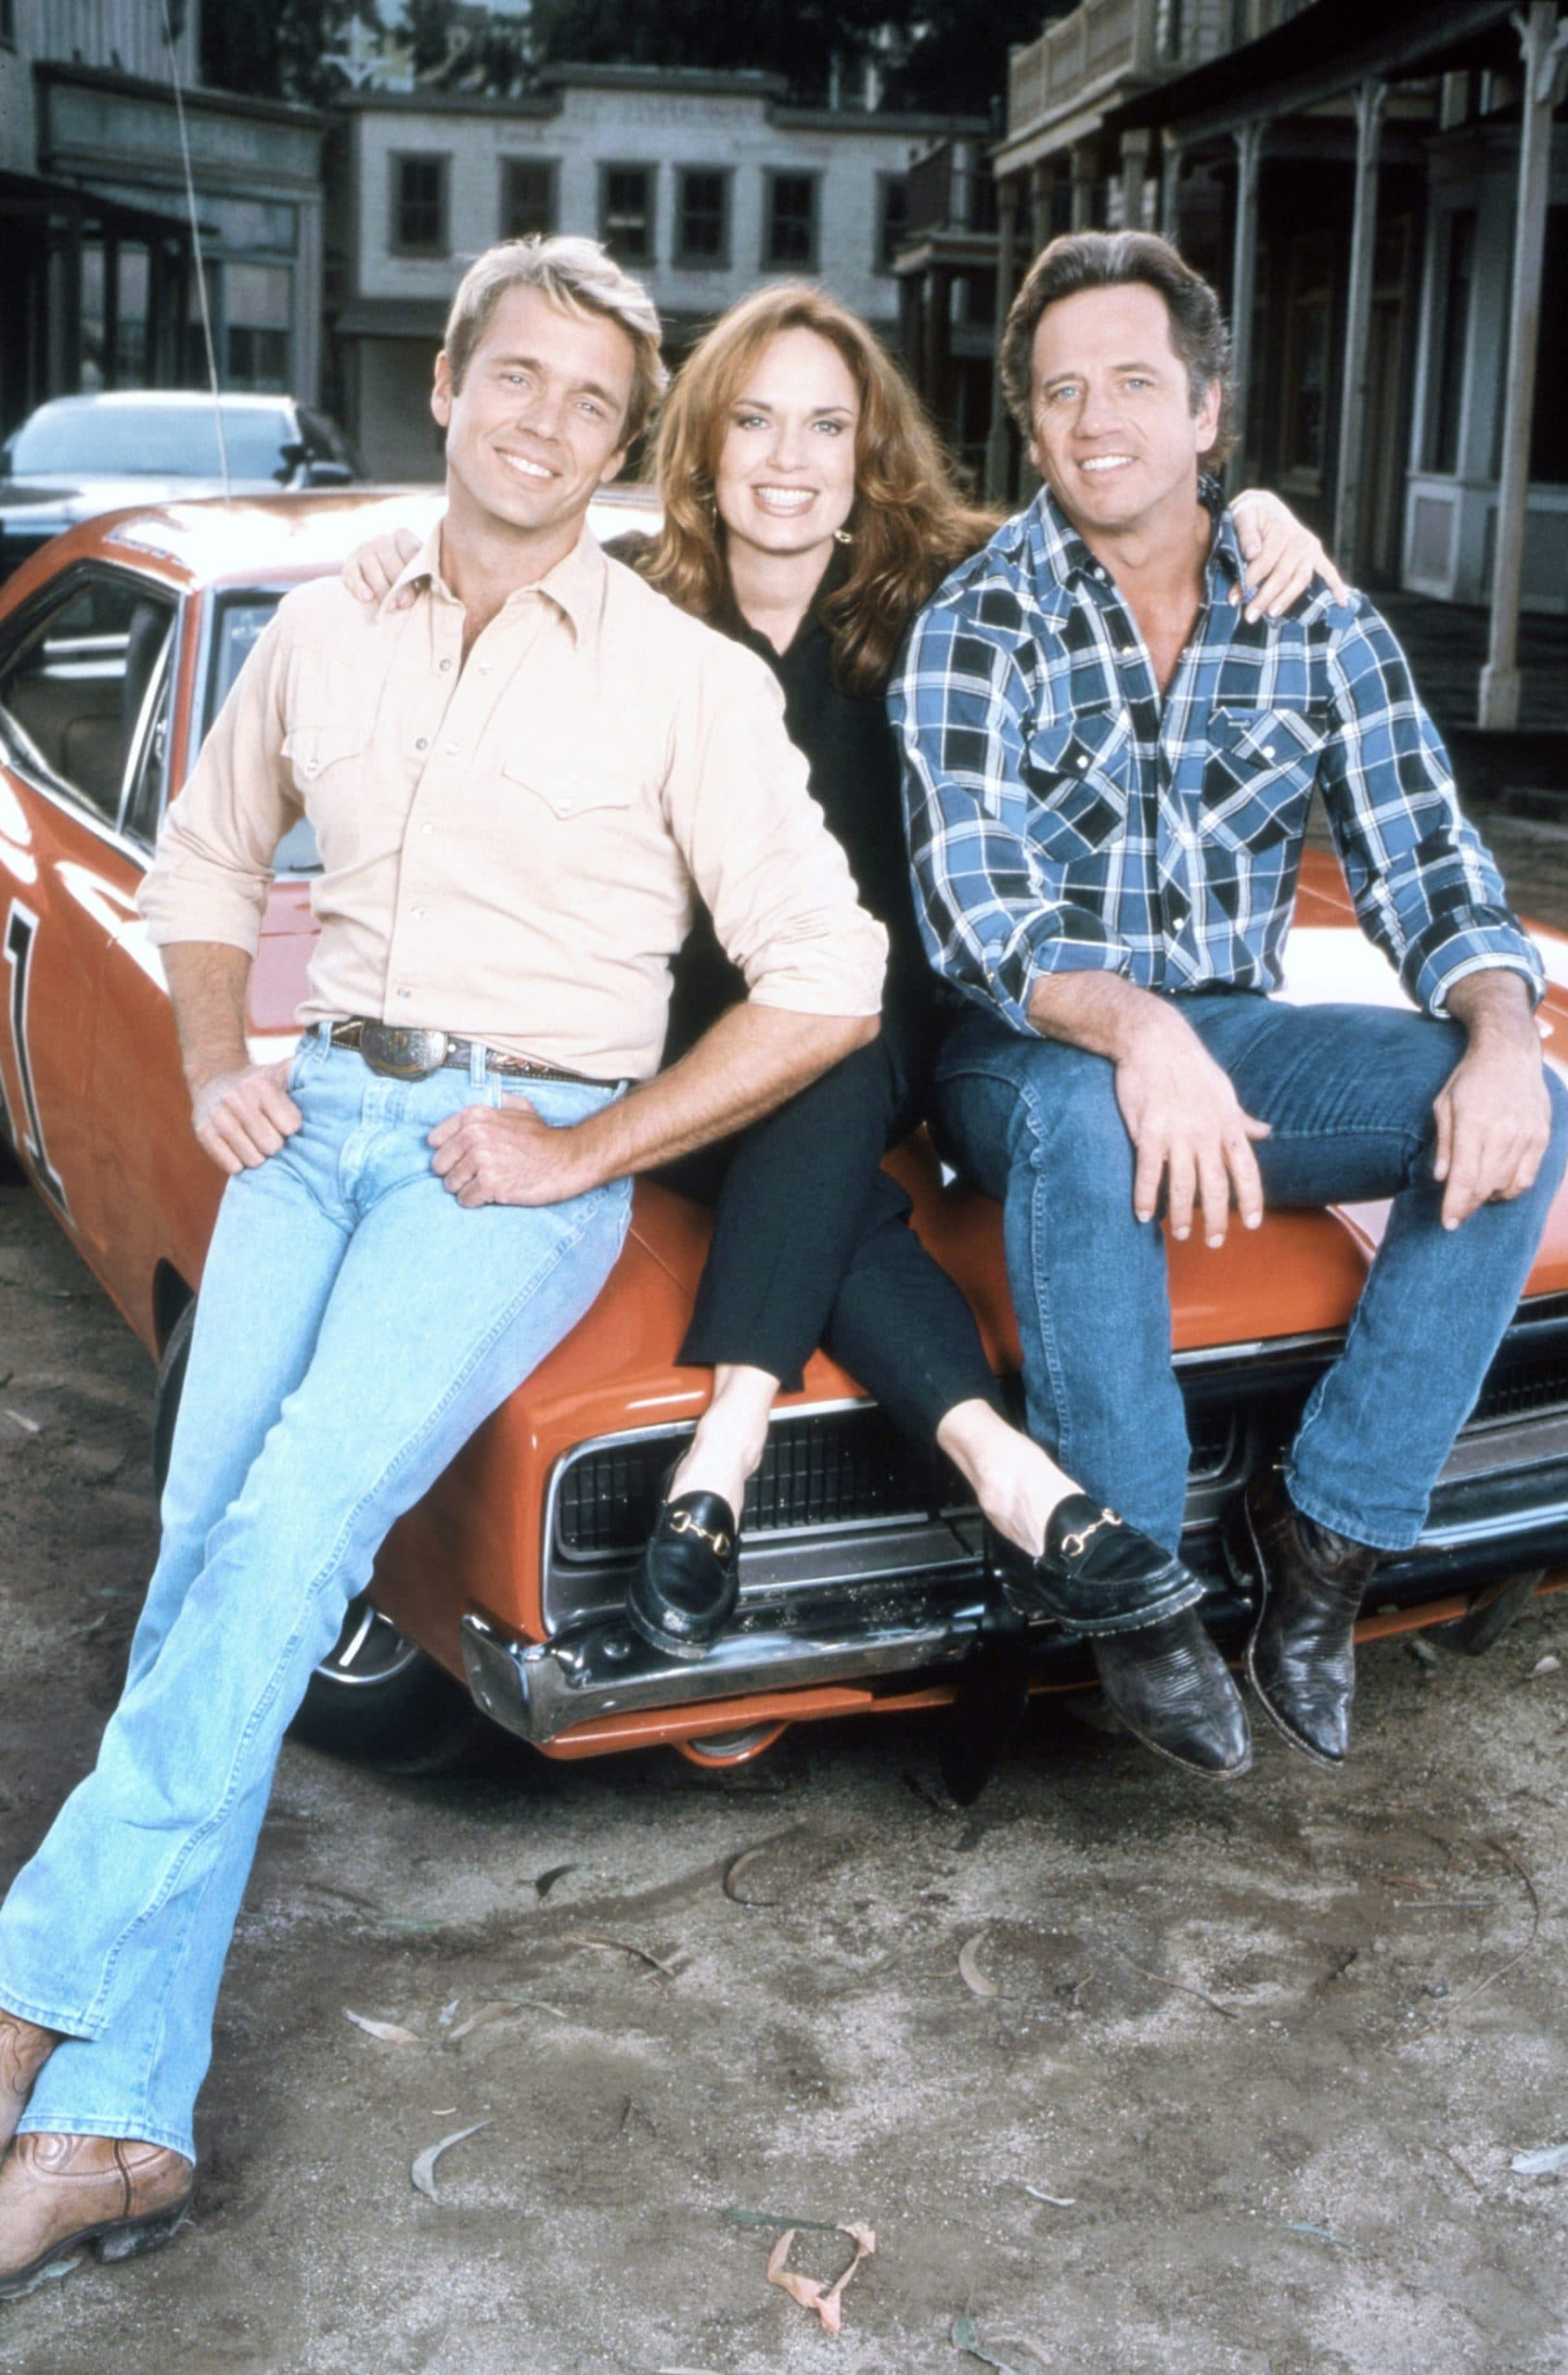 THE DUKES OF HAZZARD: REUNION!, (from left): John Schneider, Catherine Bach, Tom Wopat